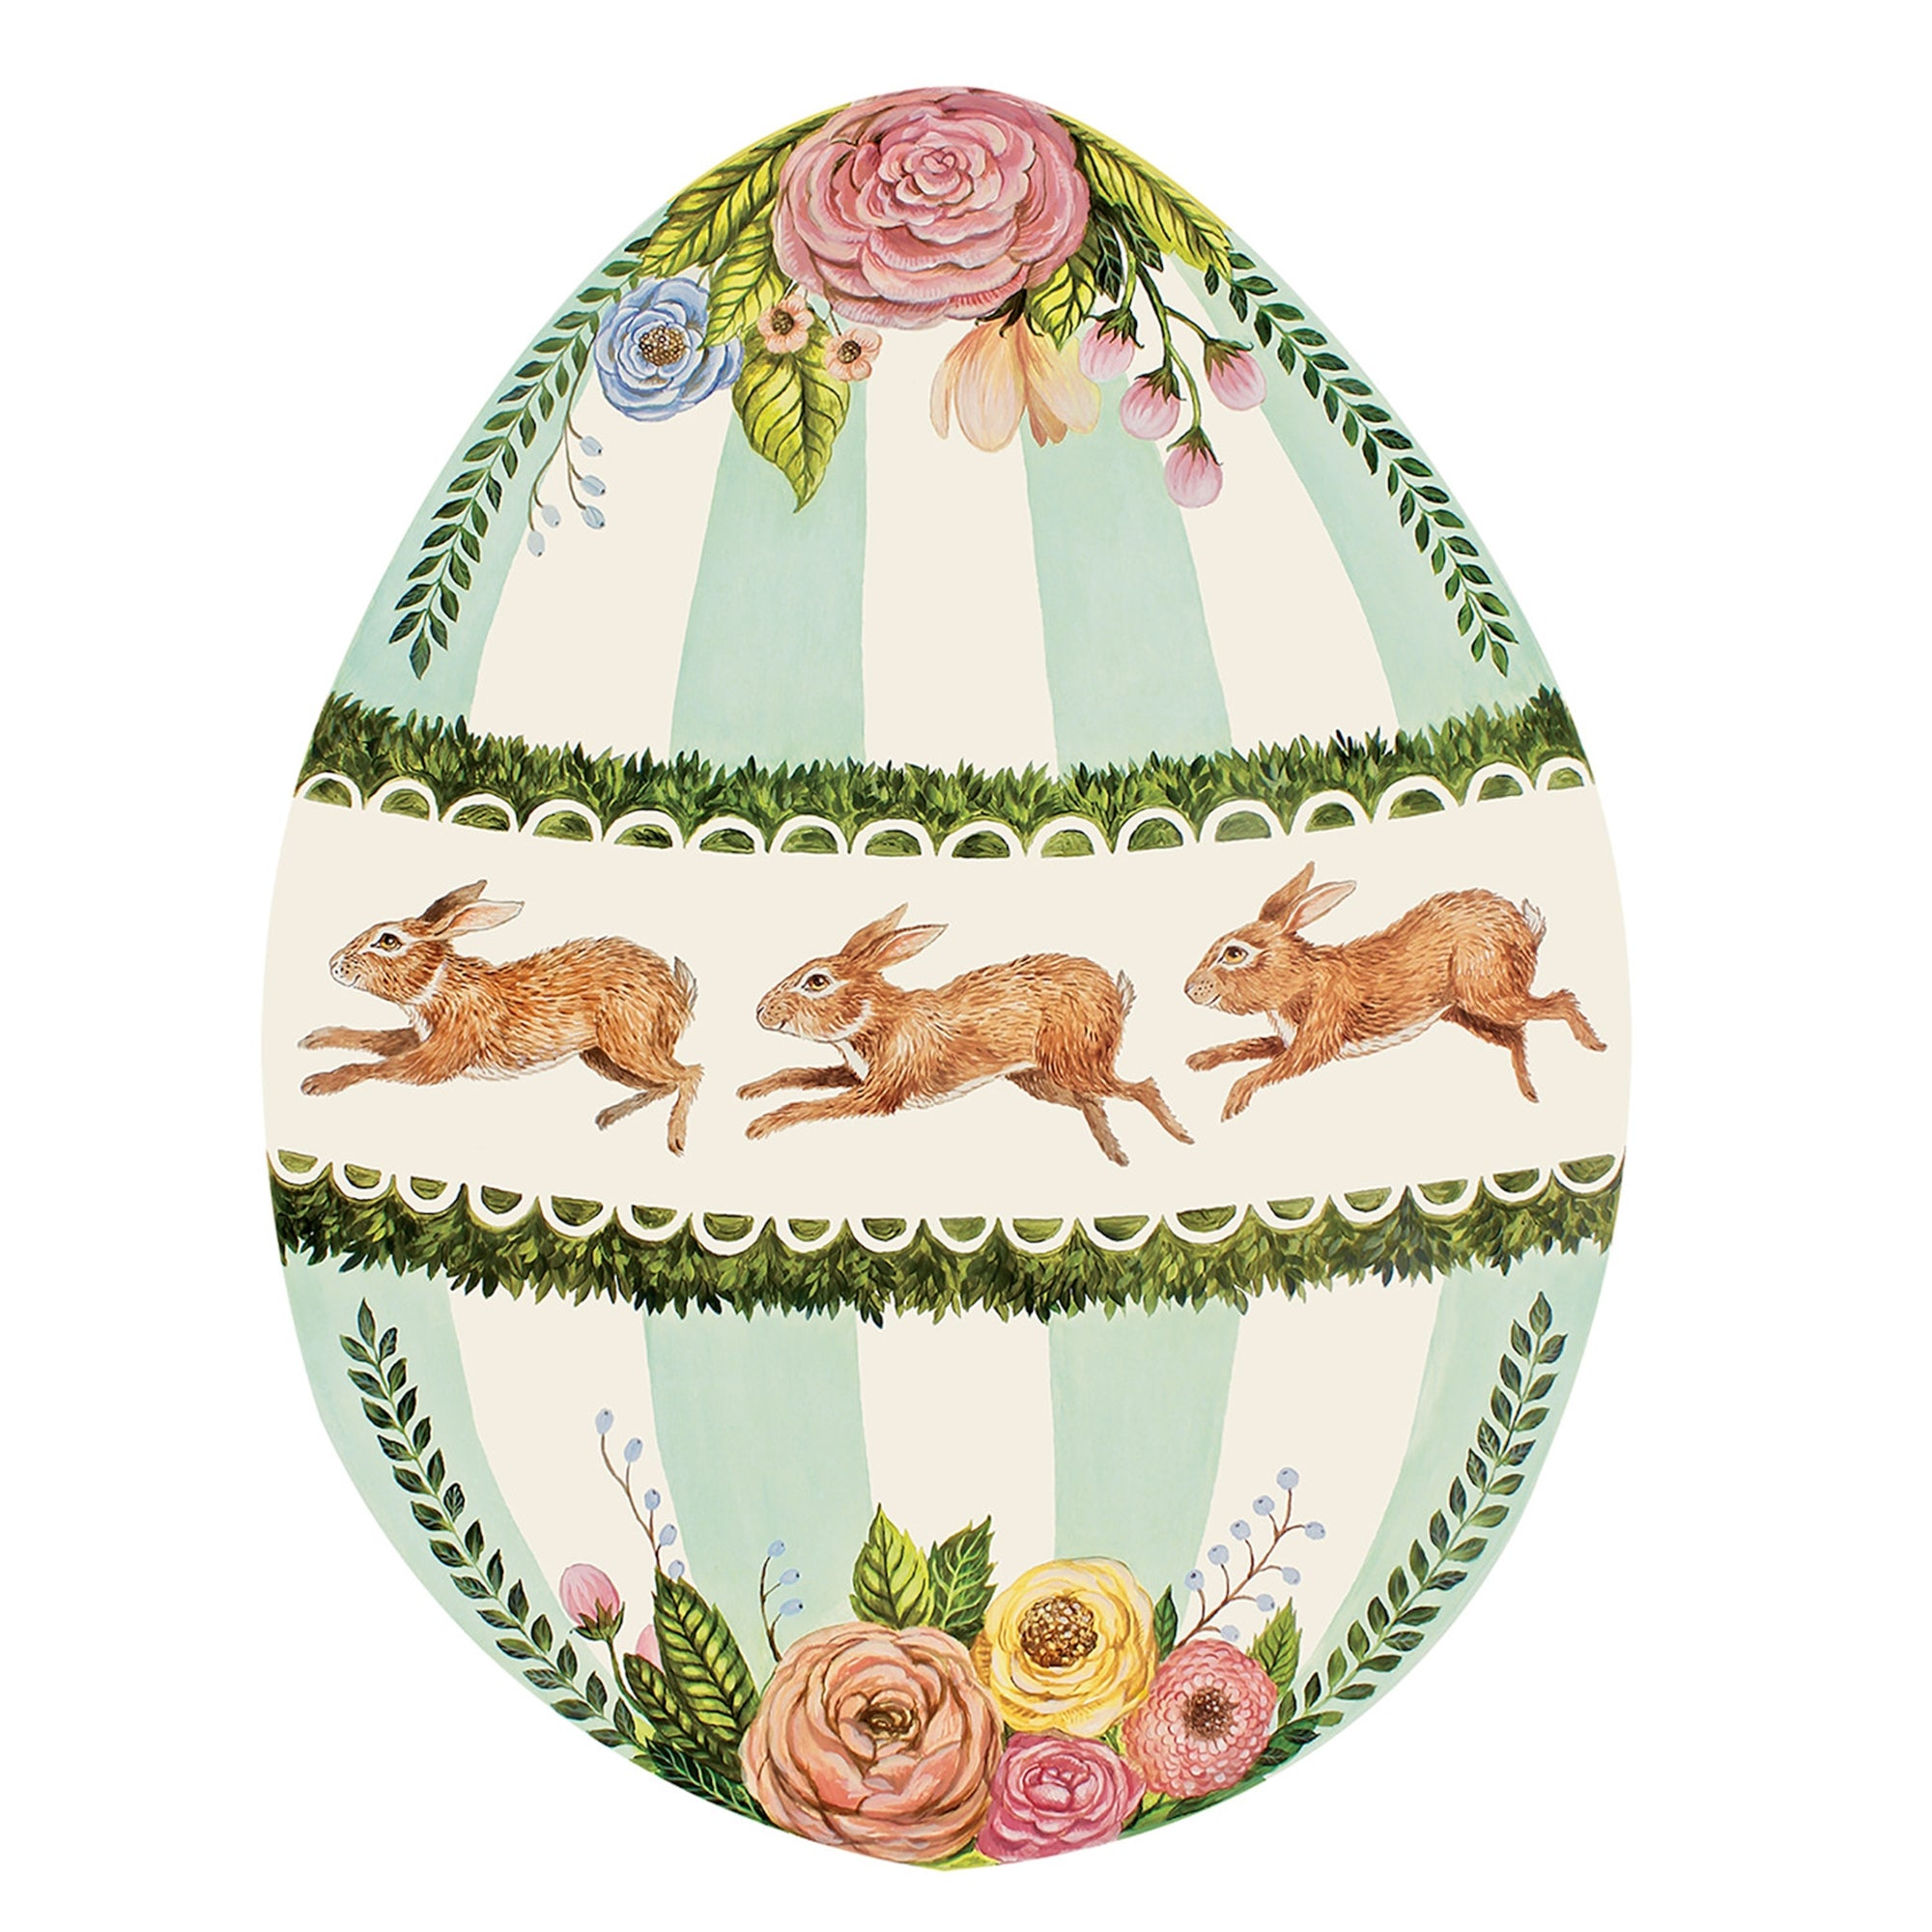 Hester & Cook Die-Cut Boxwood Bunny Egg Placemat